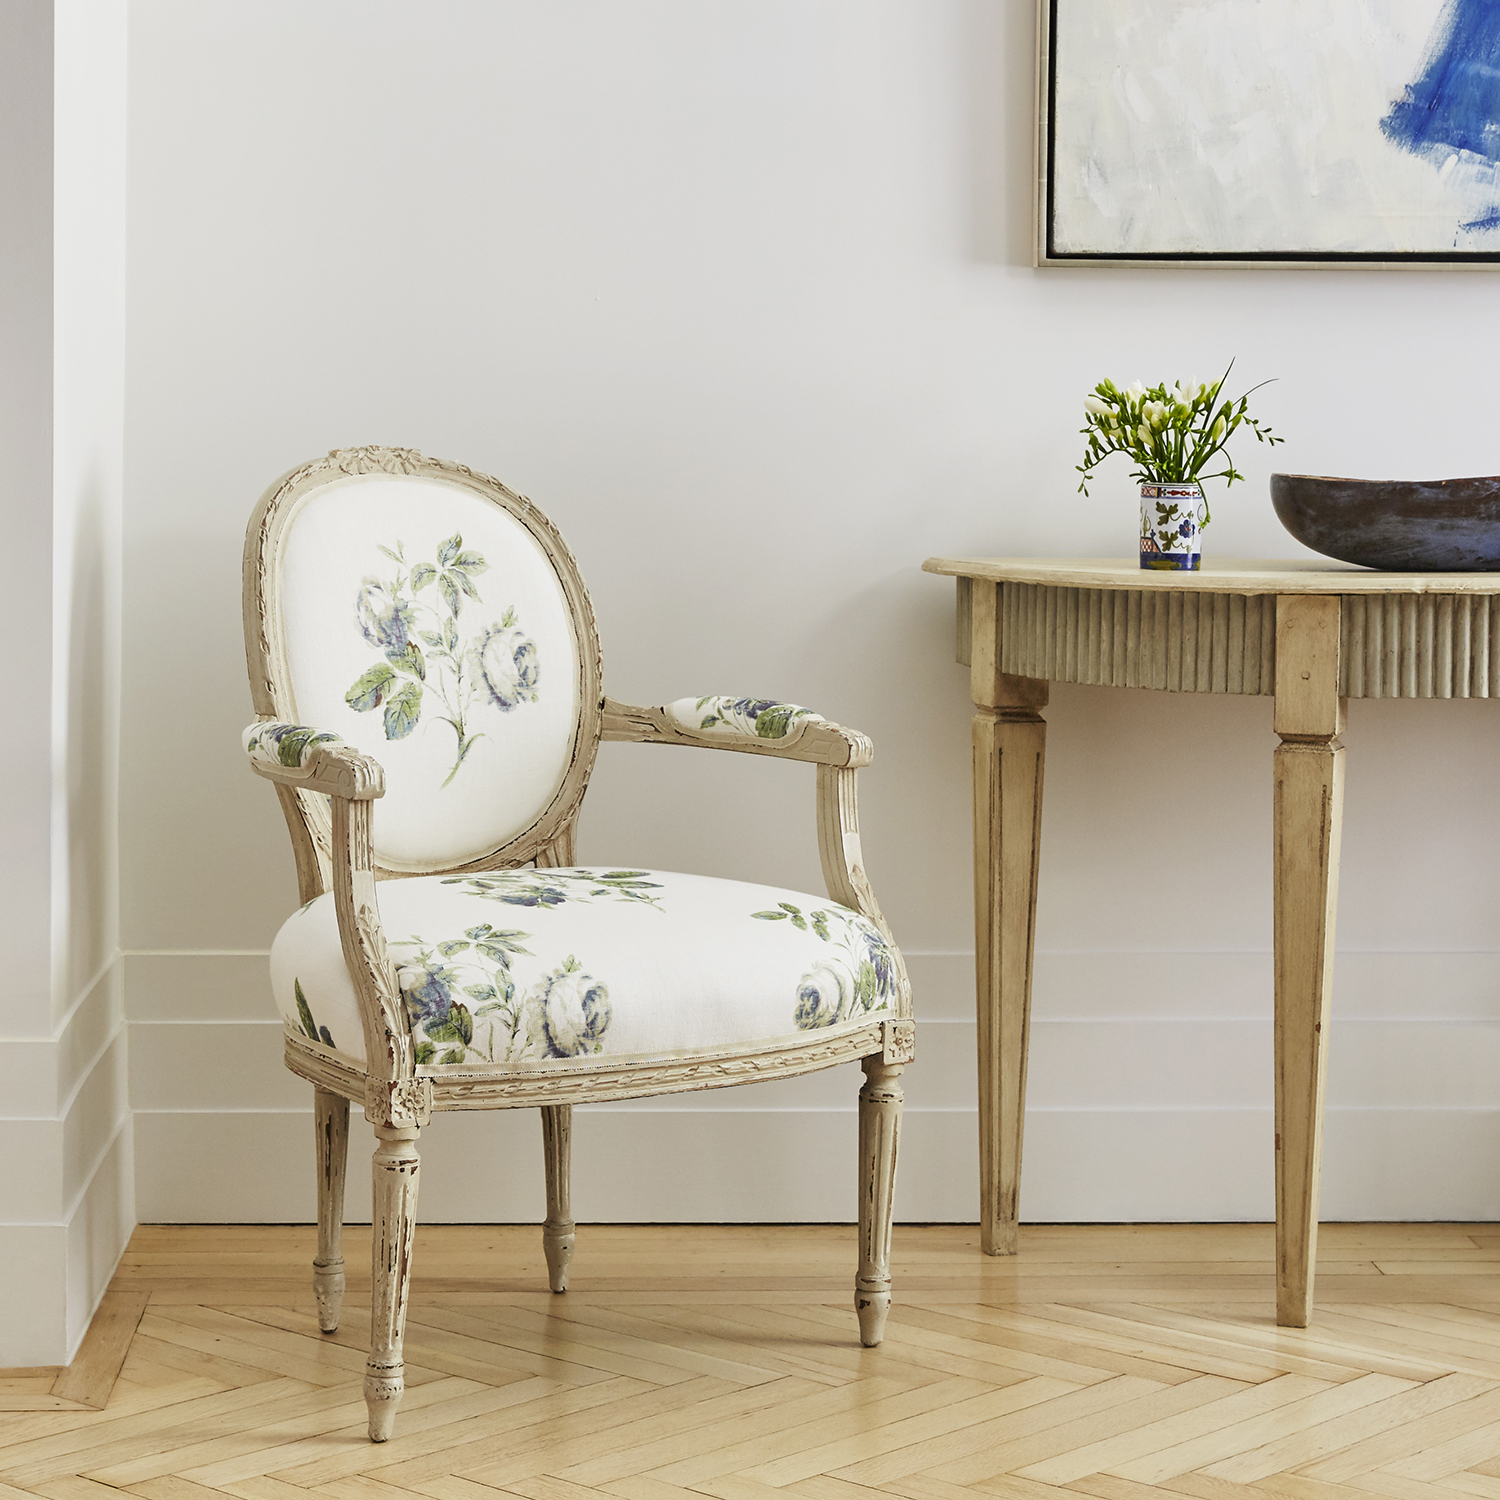 1.Blithfield - The Winthrop Collection  - Simsbury - Lime Blue French Chair B.jpg